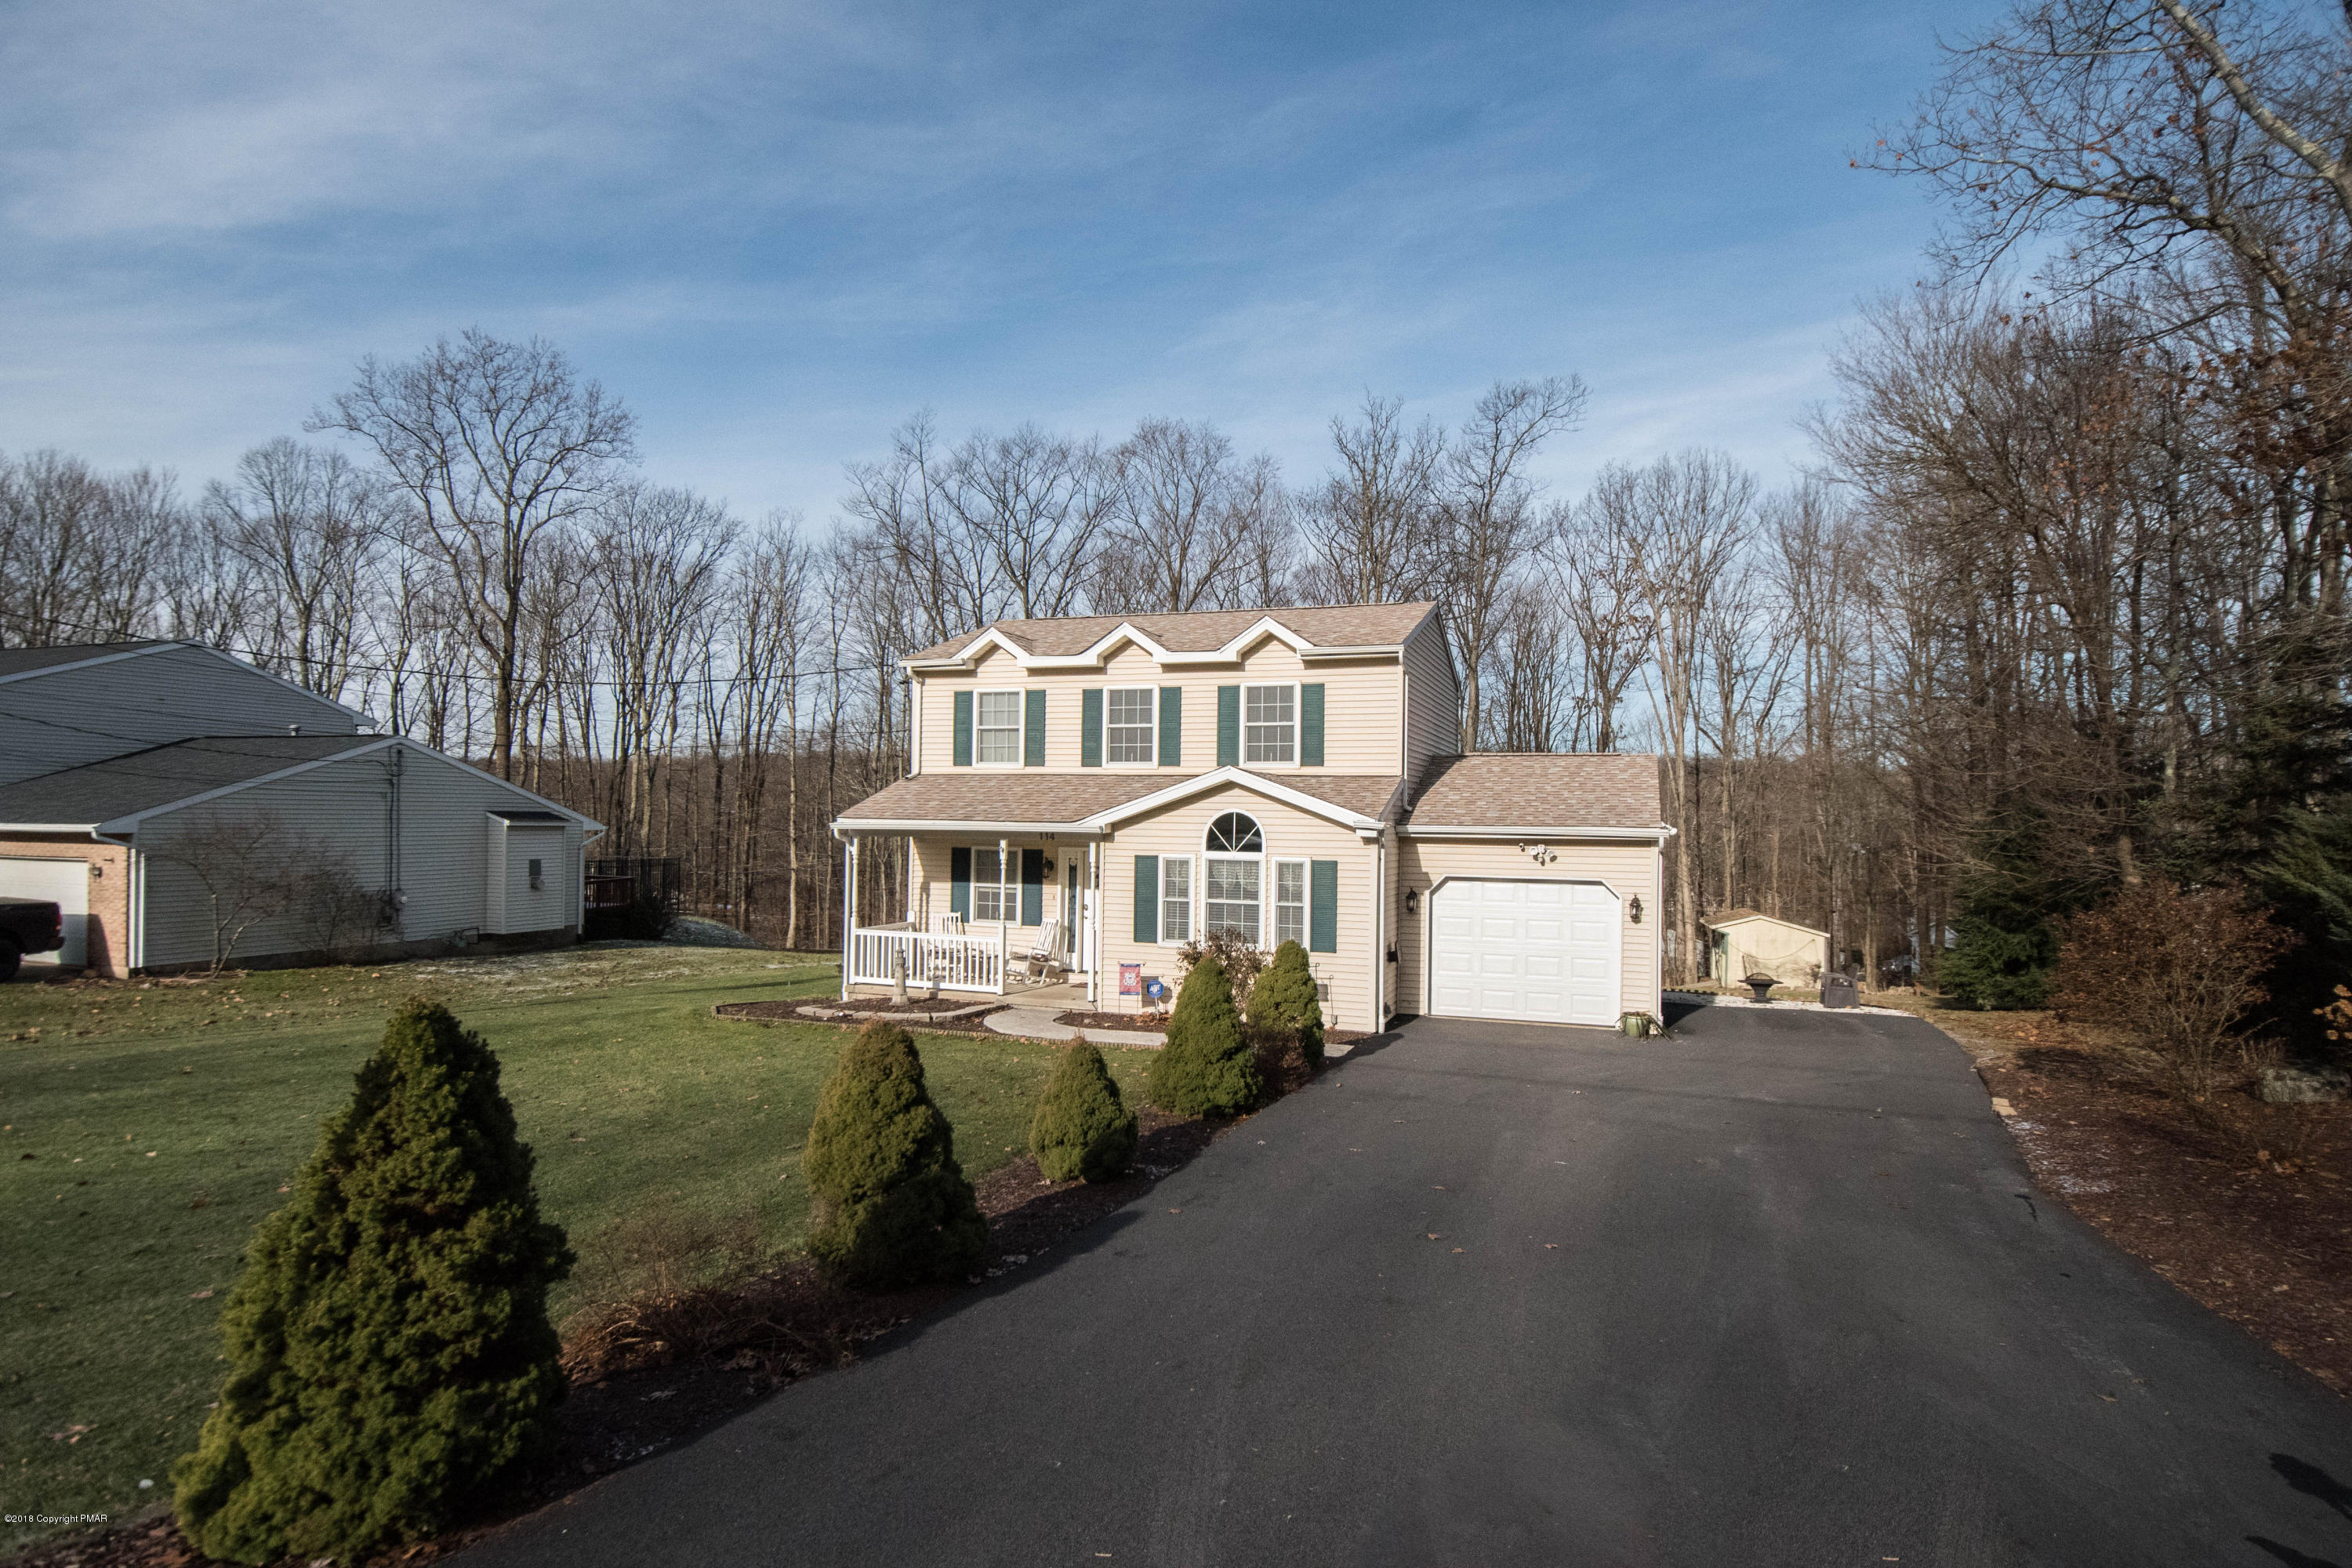 114 Foothill Dr, Mountain Top, PA 18707